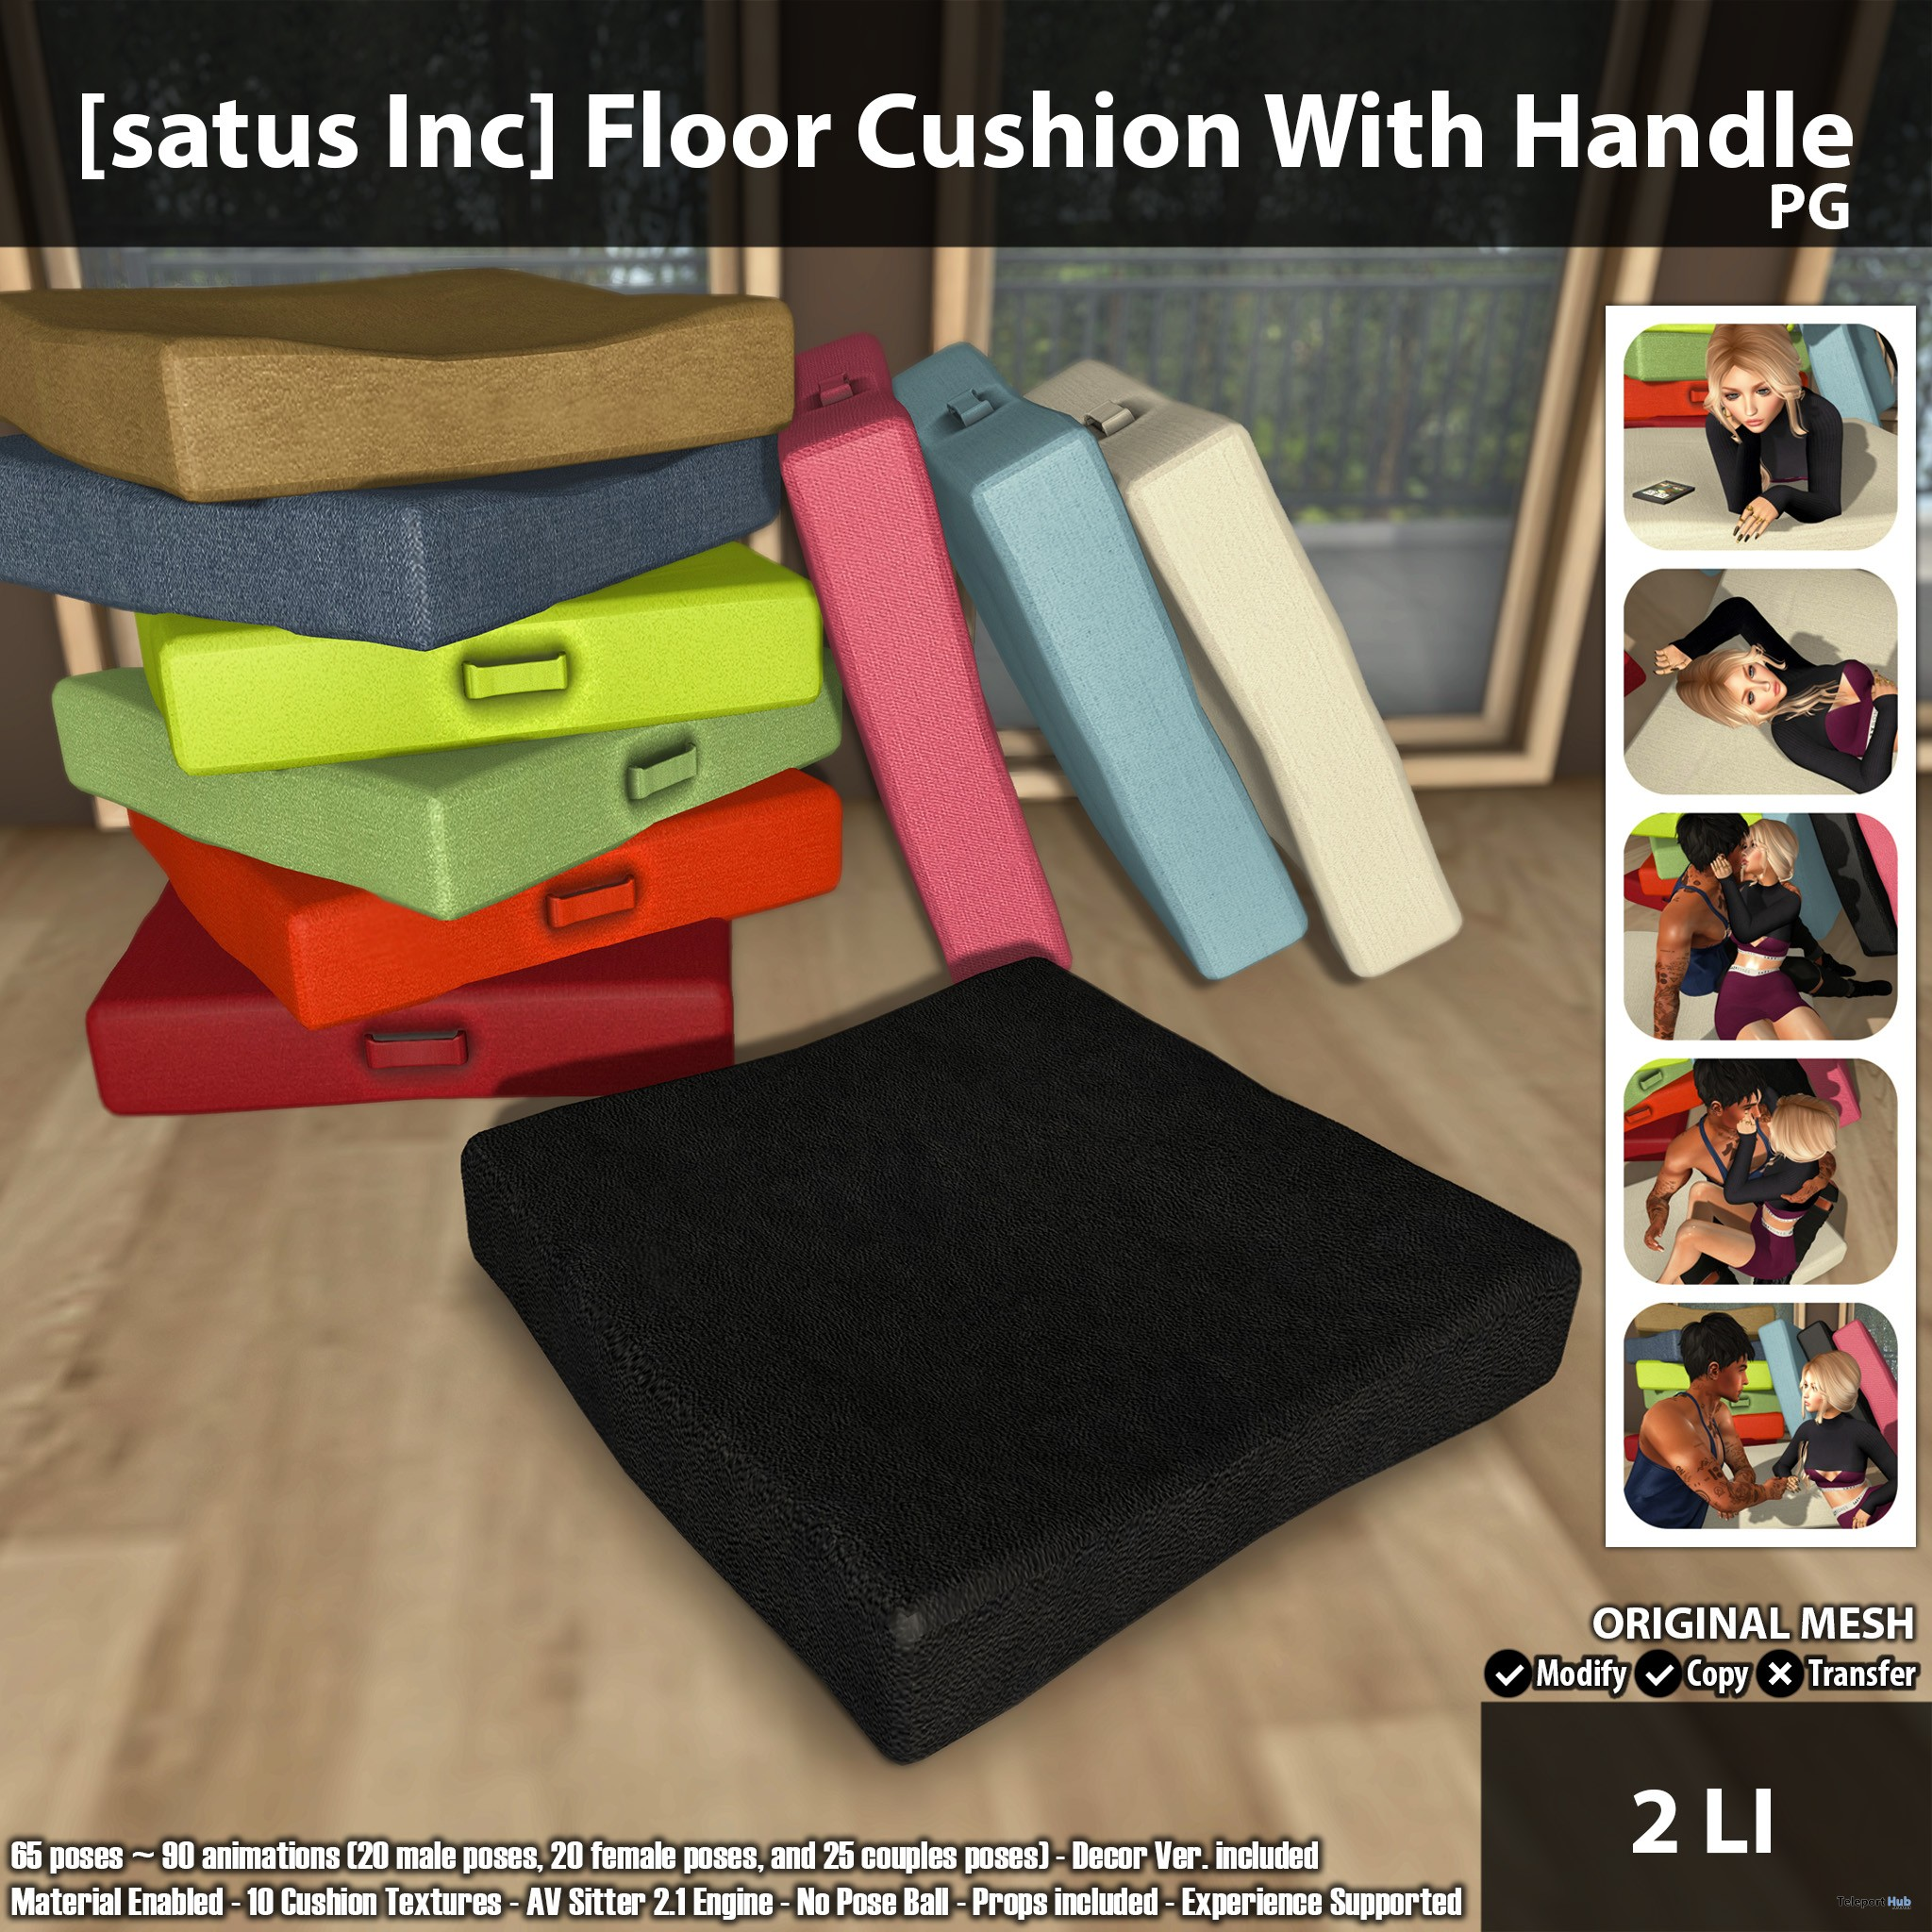 satus Inc Floor Cushion With Handle PG Ad - New Launch: Ground Cushion With Deal with Grownup & PG by [satus Inc]